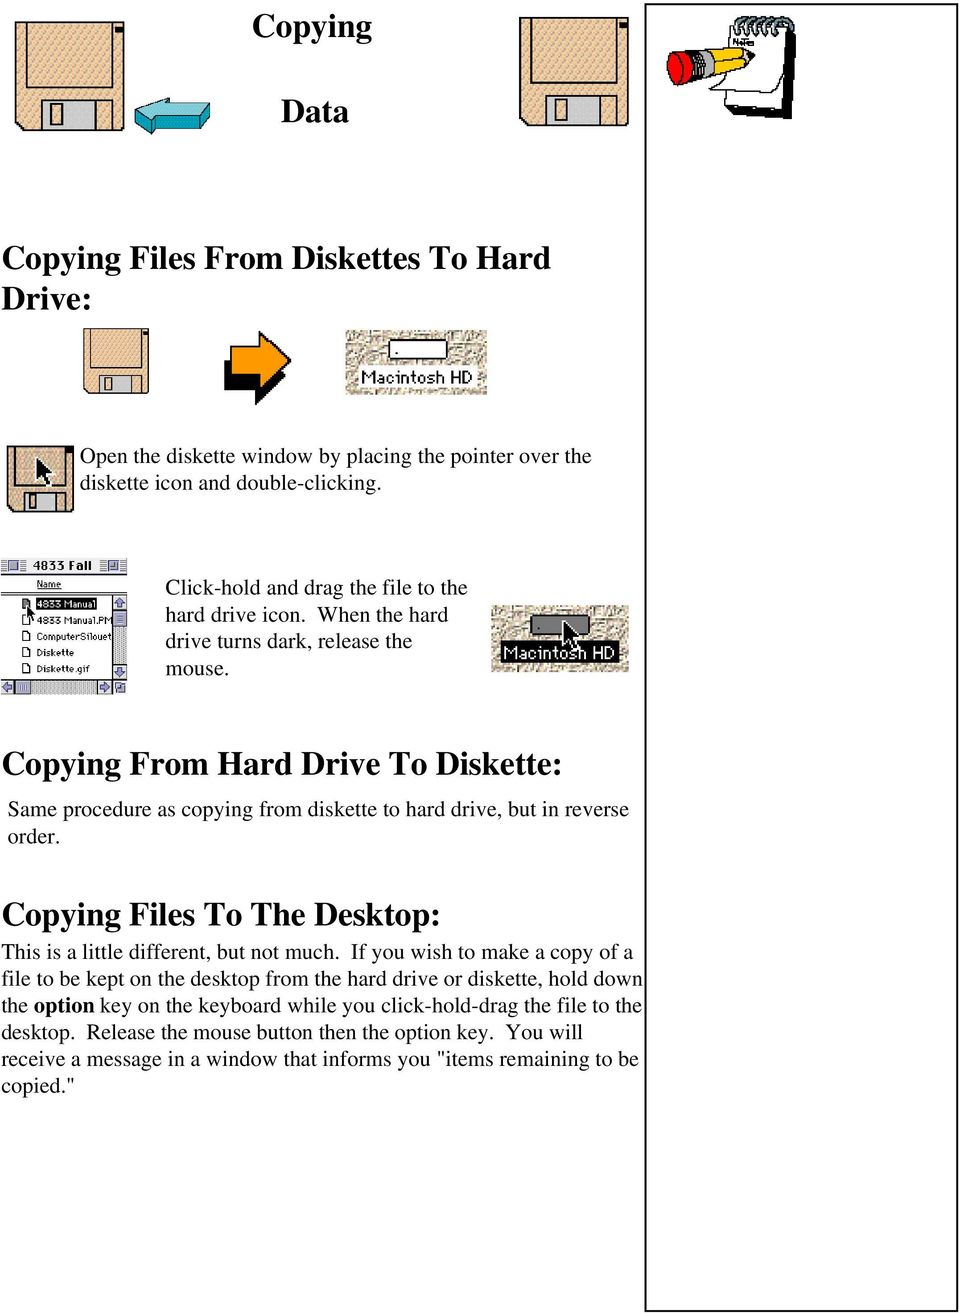 Copying From Hard Drive To Diskette: Same procedure as copying from diskette to hard drive, but in reverse order. Copying Files To The Desktop: This is a little different, but not much.